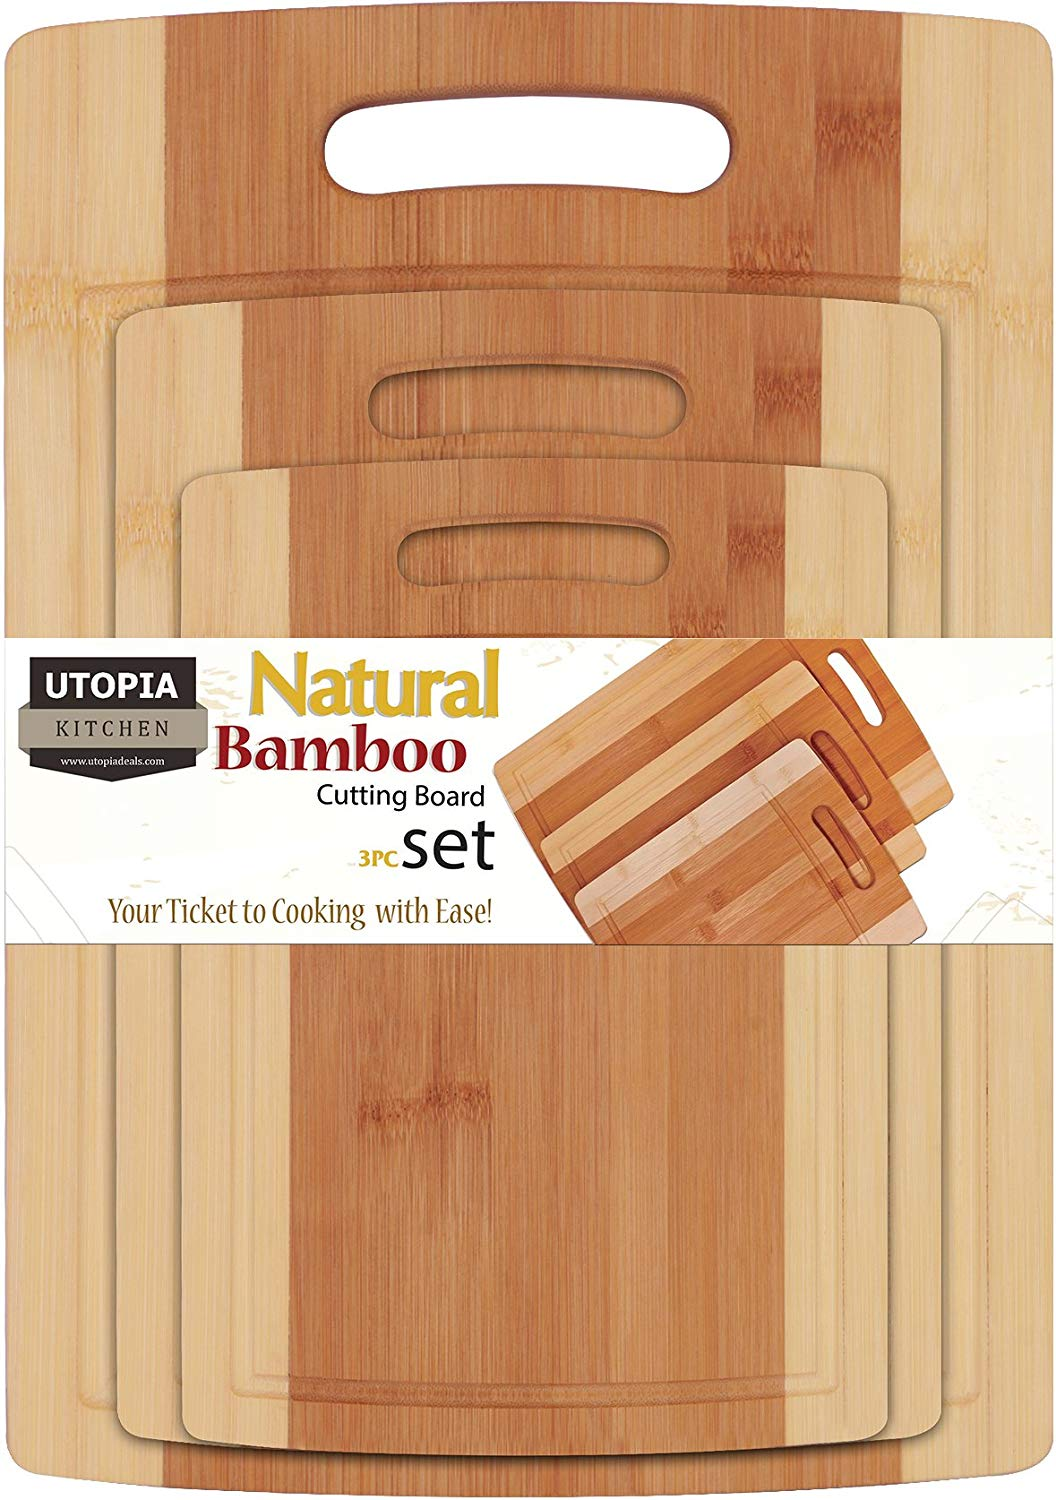 Utopia Kitchen Bamboo Cutting Board 3 Piece Set